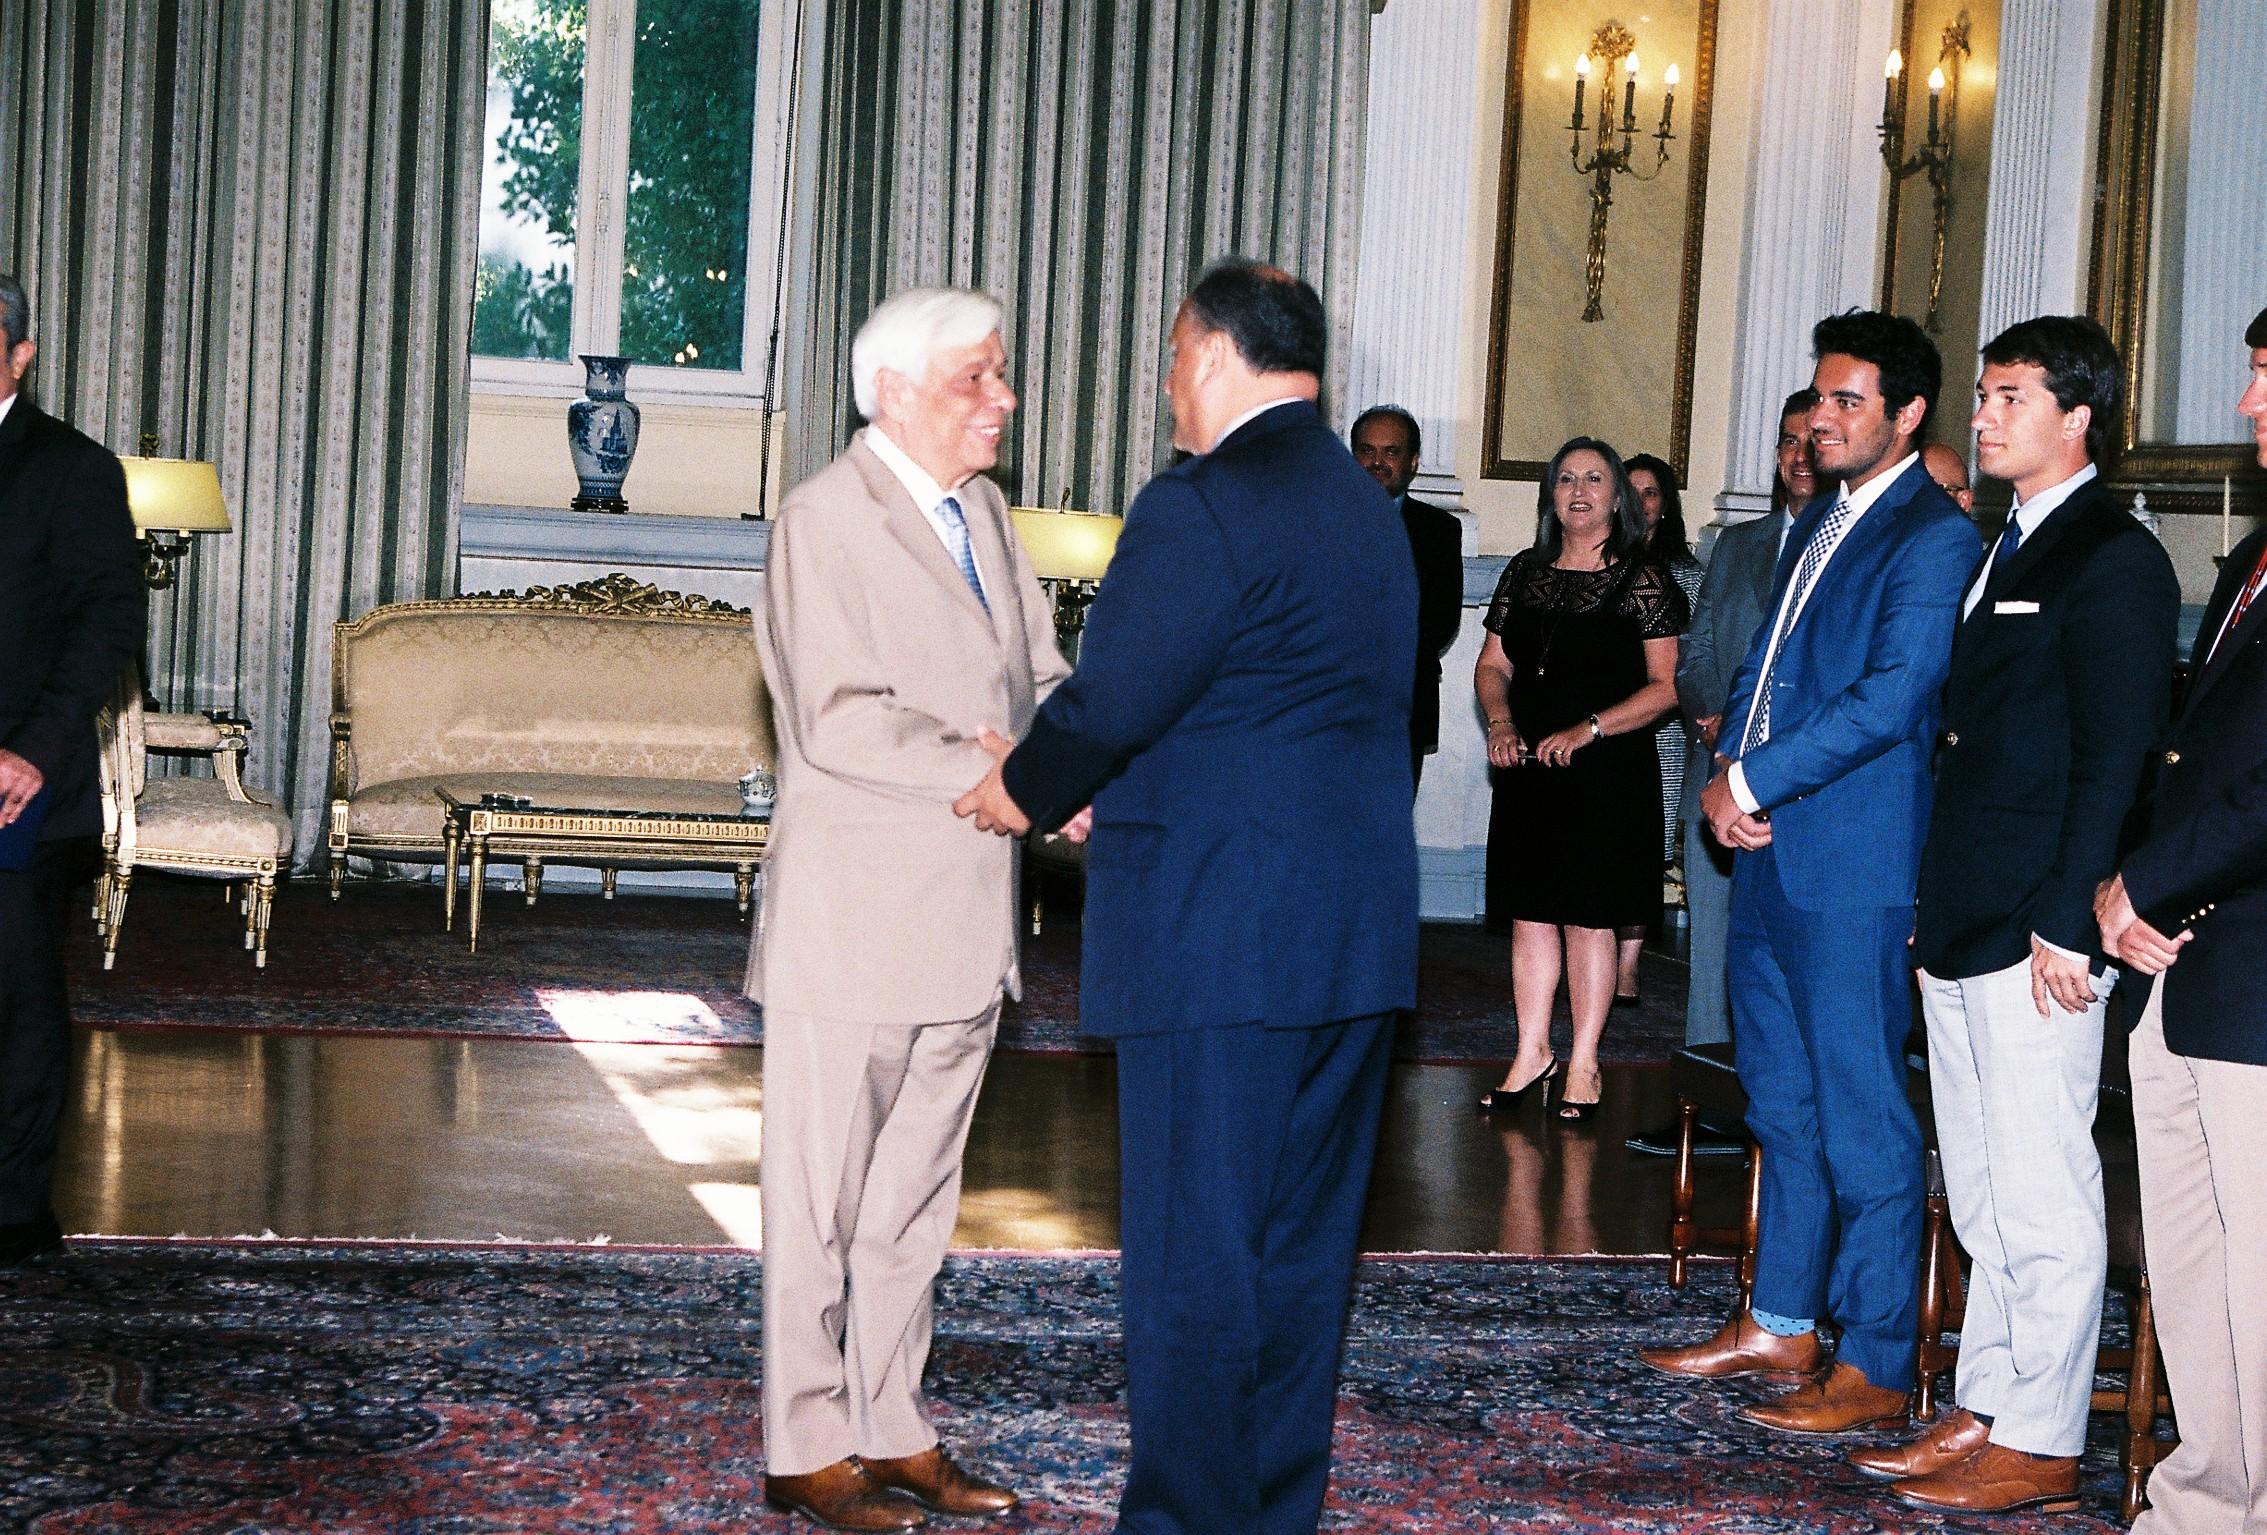 President Prokopis Pavlopoulos welcoming Nick Larigakis and the students.